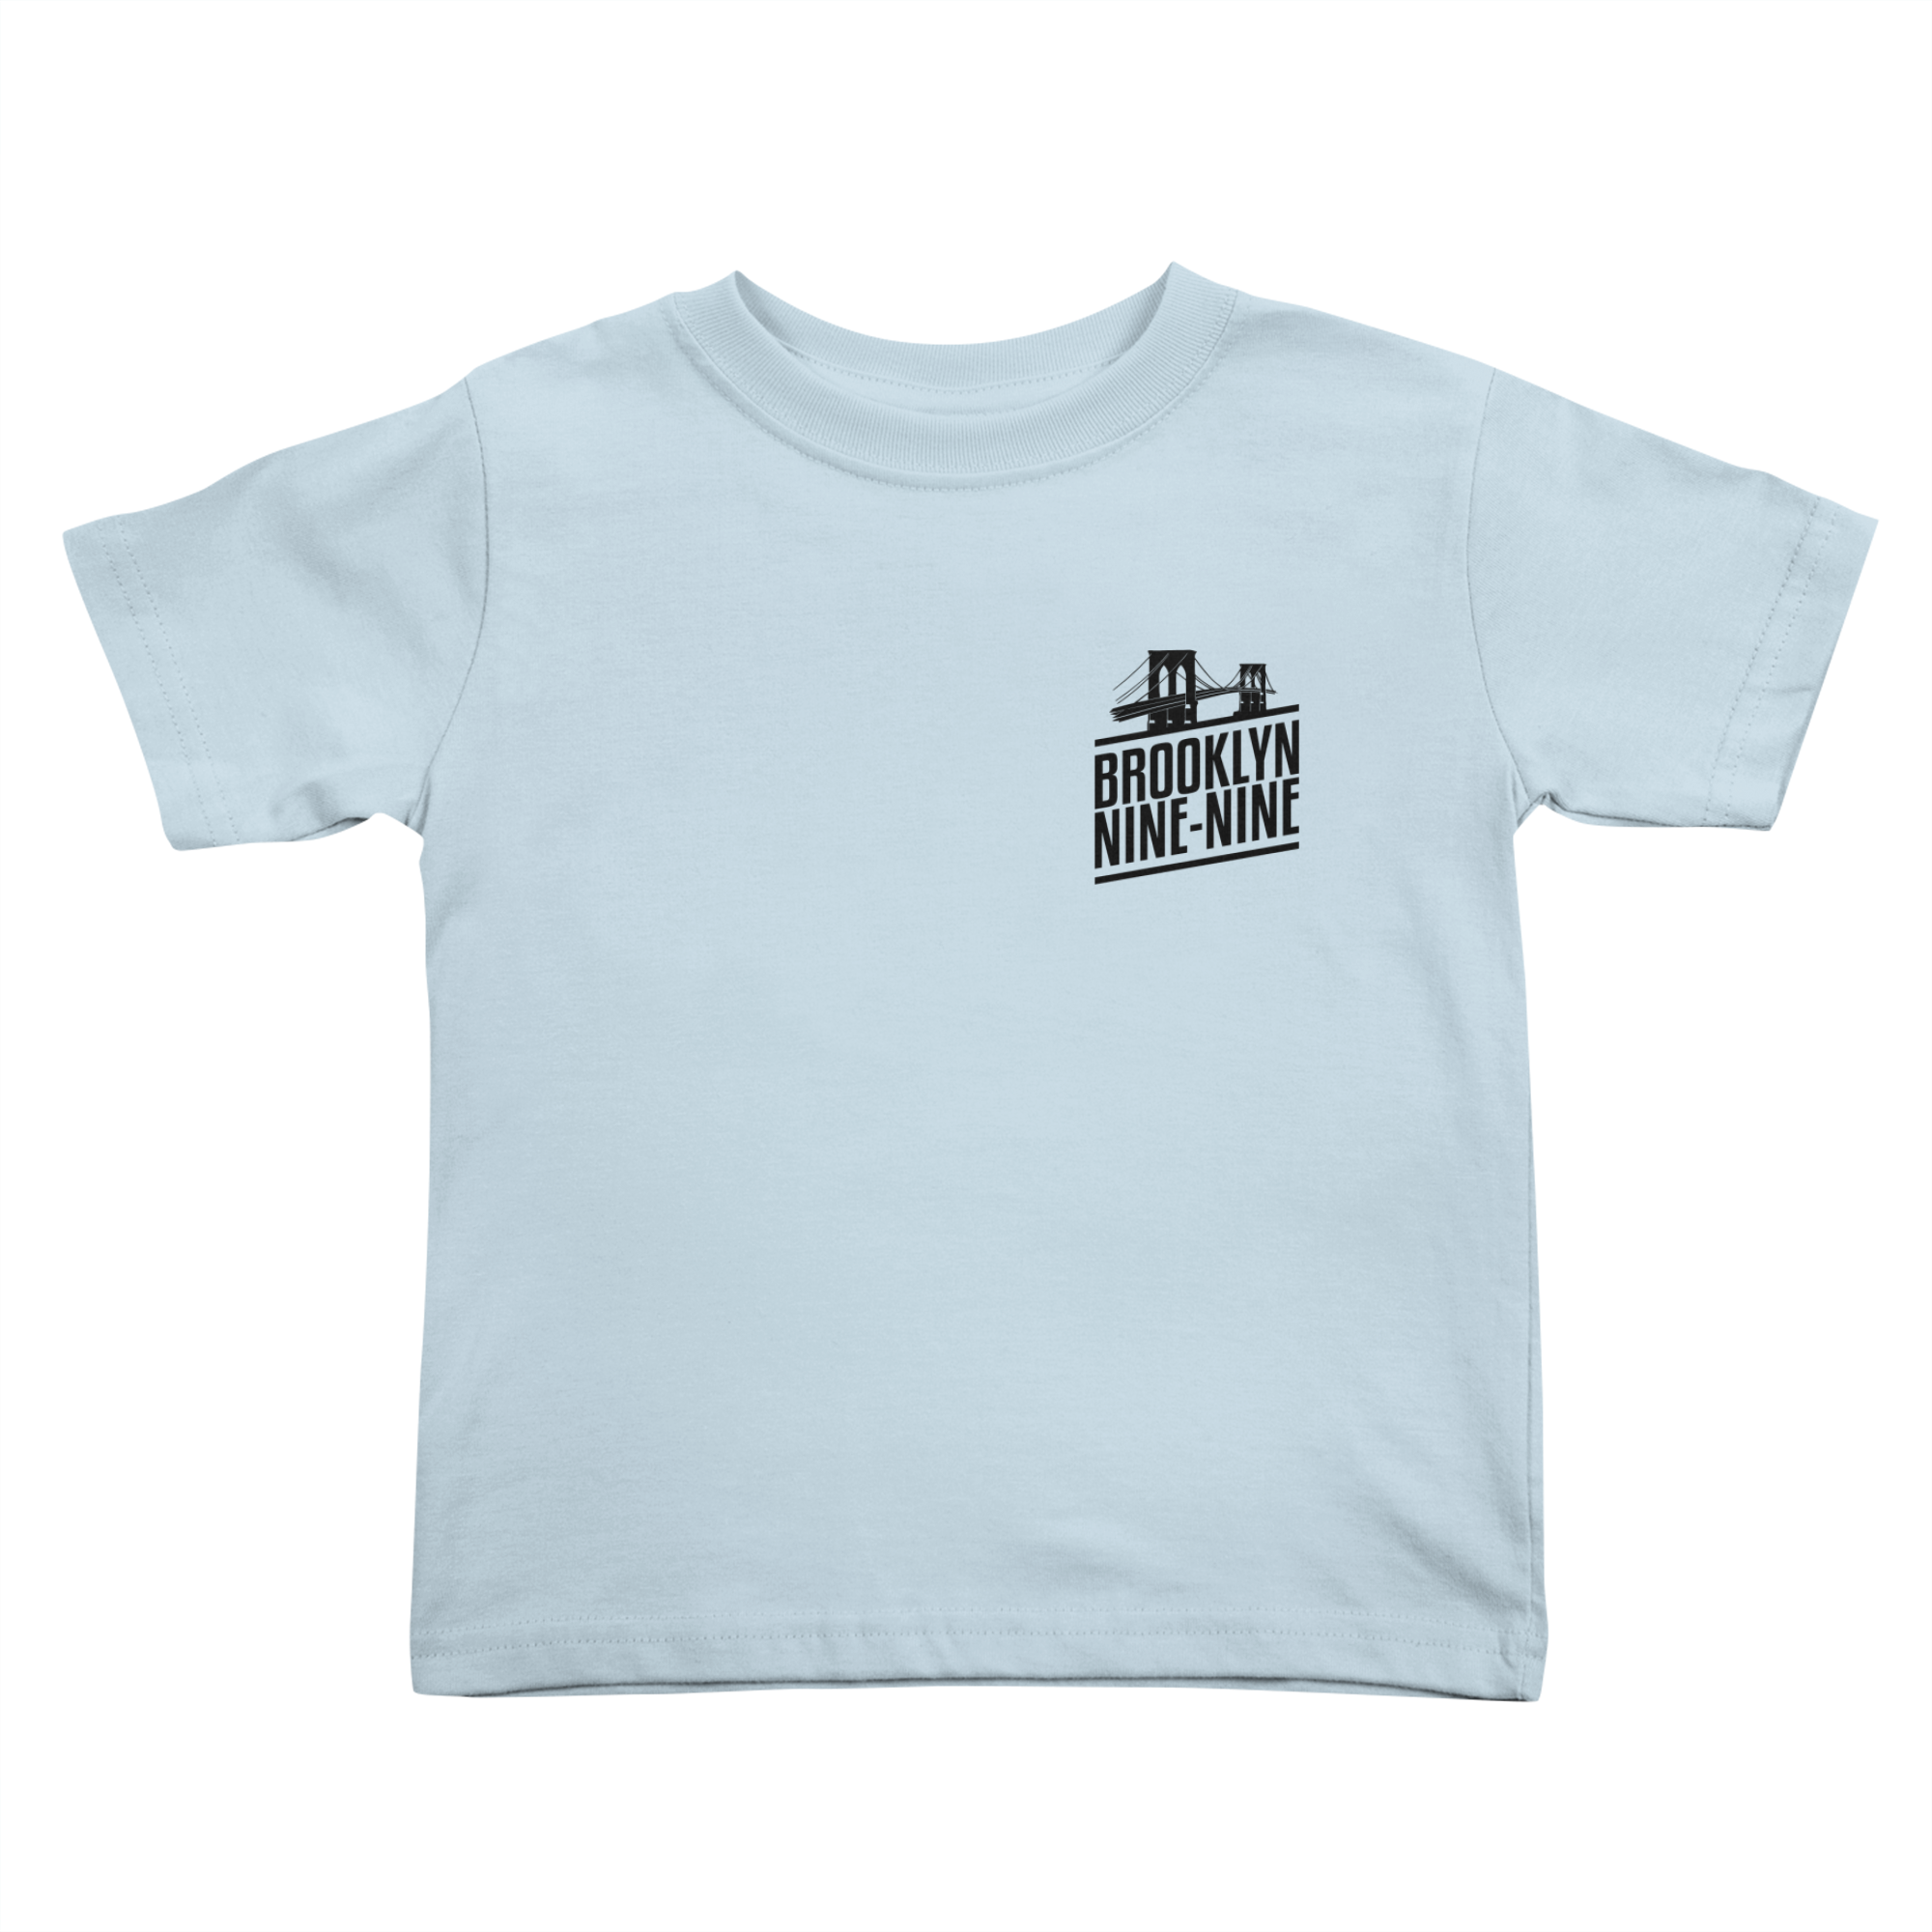 59dcc158e pixel8 brooklyn-nine-nine-2 kids toddler-t-shirt